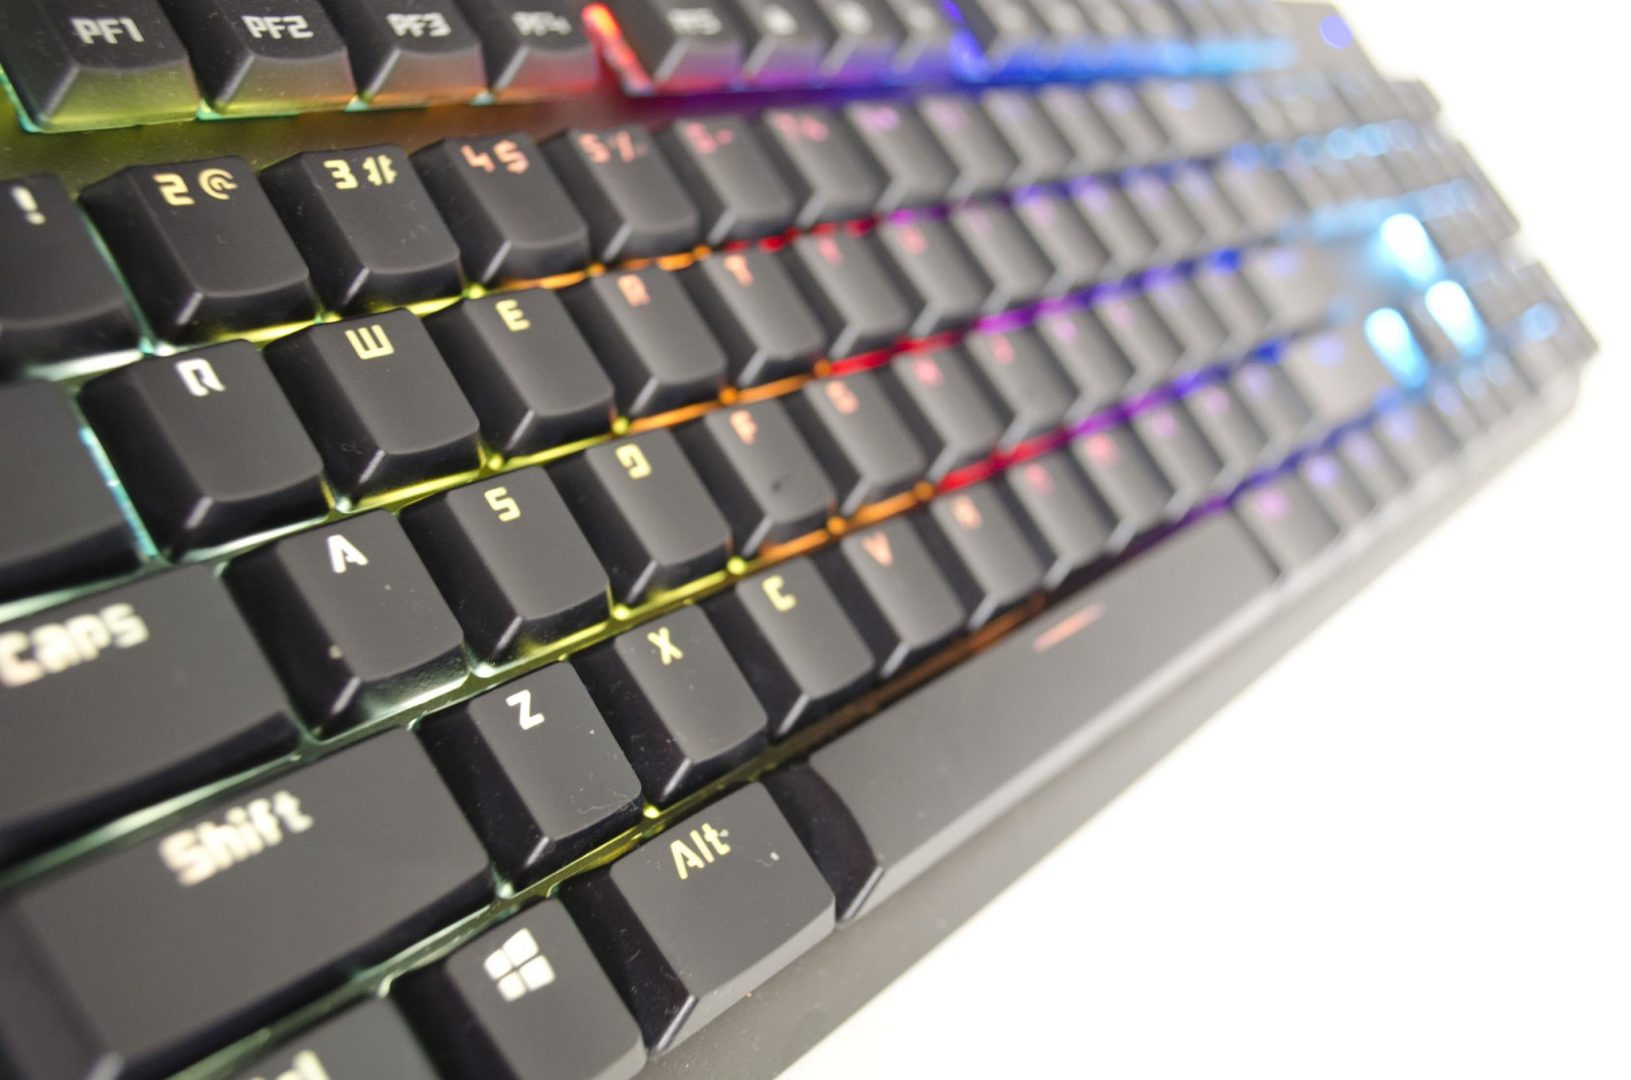 tesoro-gram-spectrum-rgm-gaming-mechanical-keyboard-review